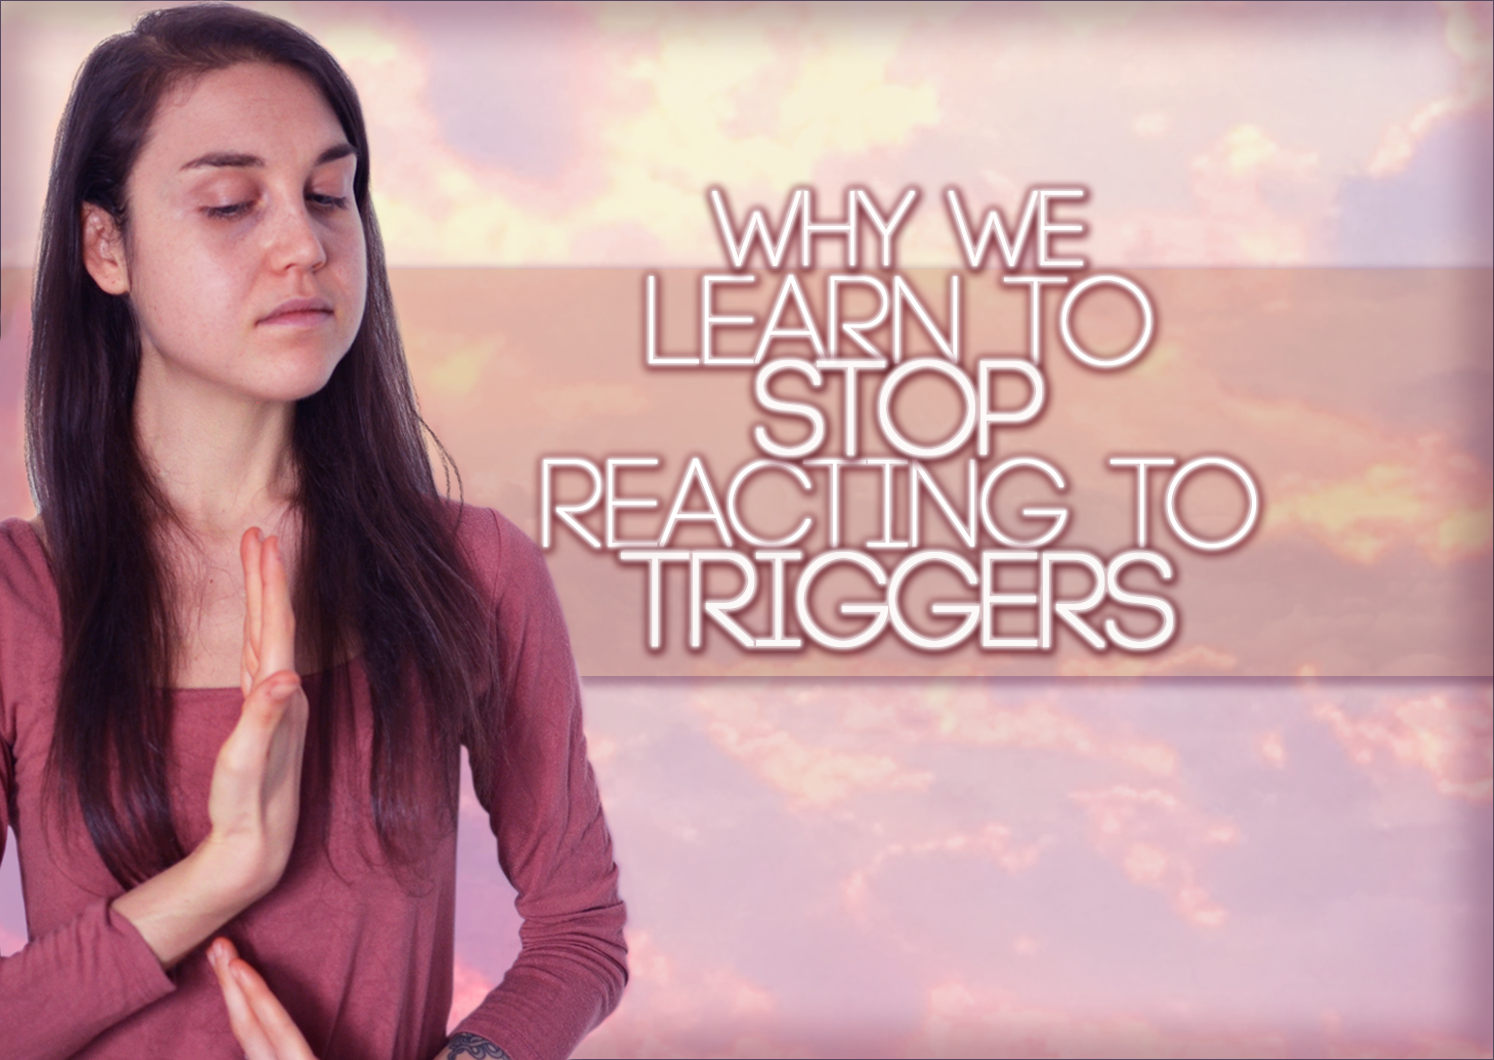 Why We Learn To STOP REACTING To Triggers